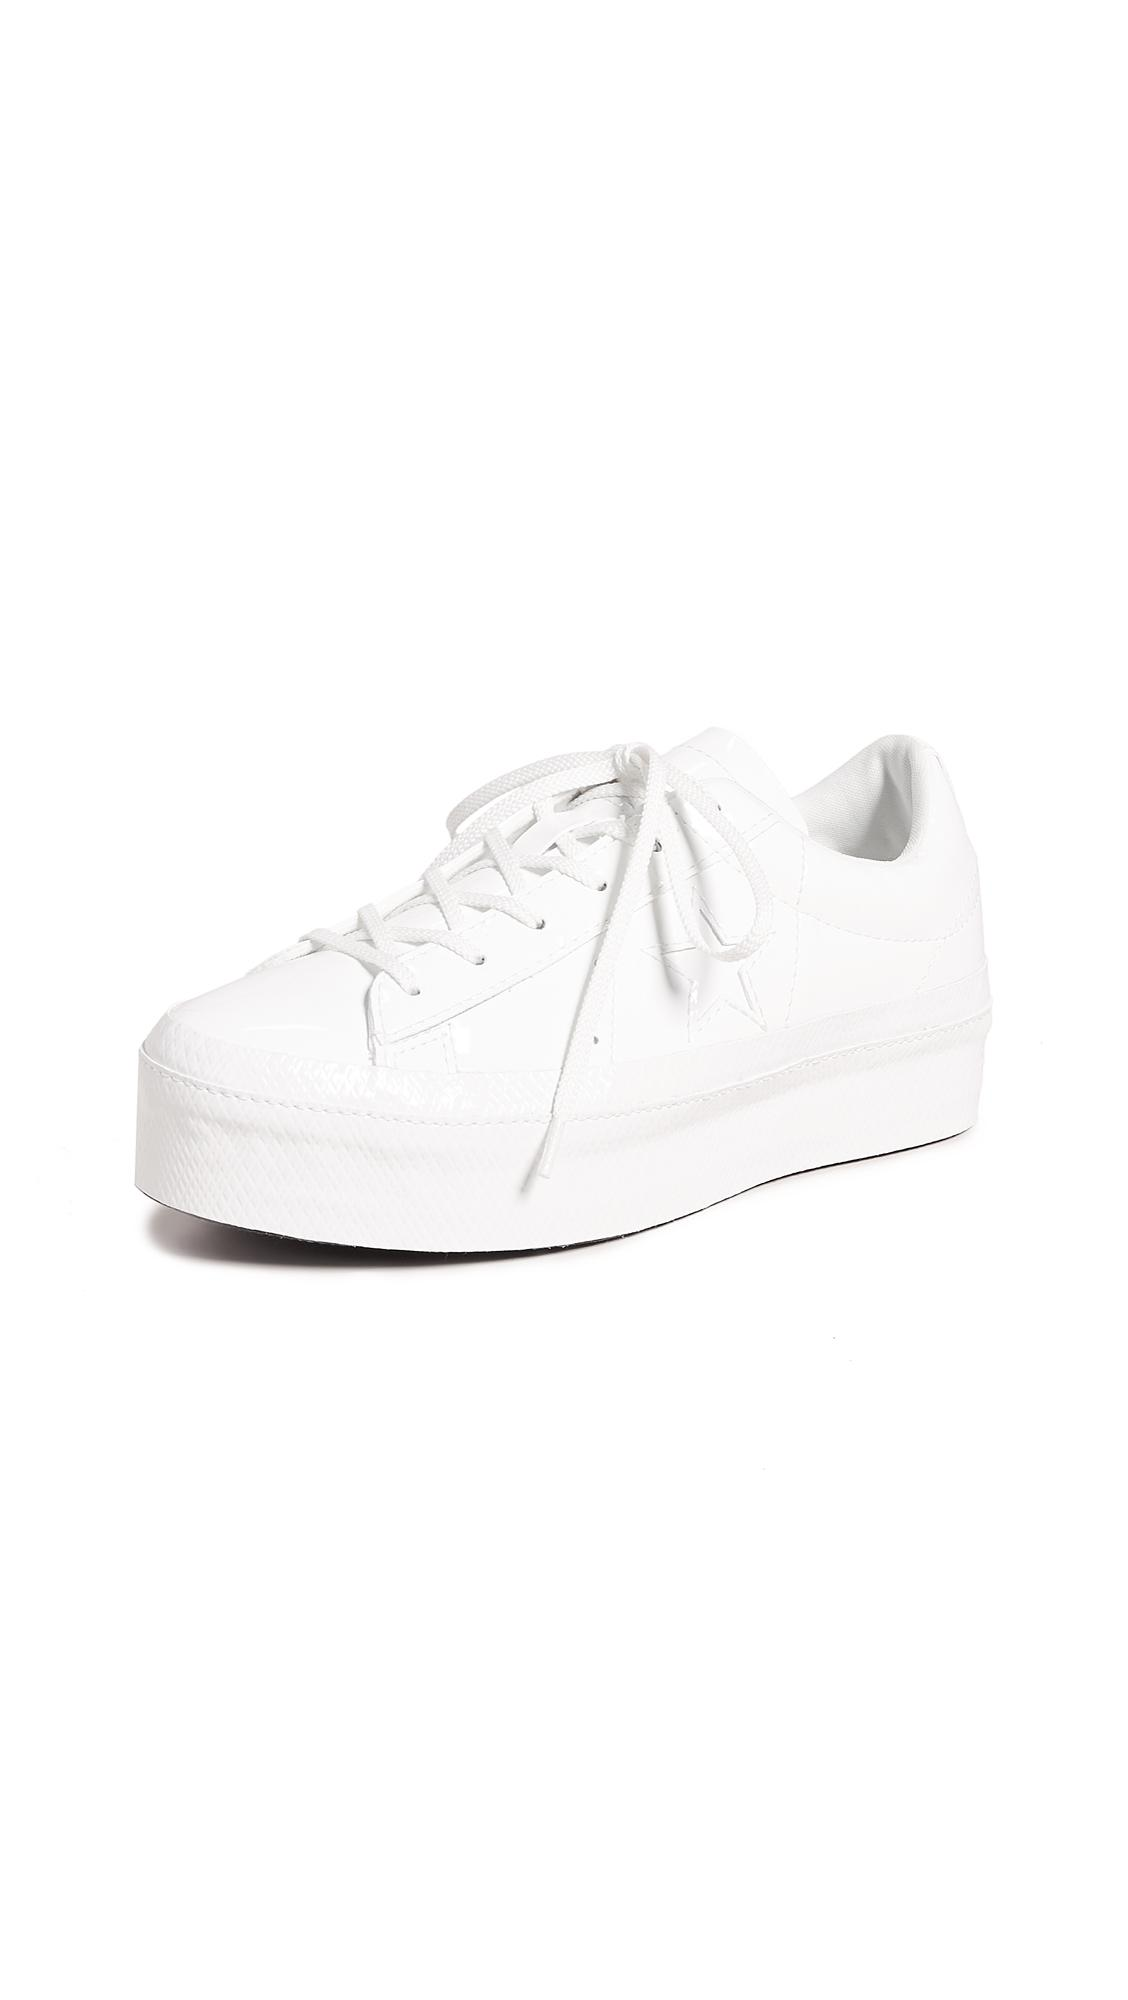 5665c191d94 Converse Women s One Star Lace-Up Platform Sneakers In Vintage White ...